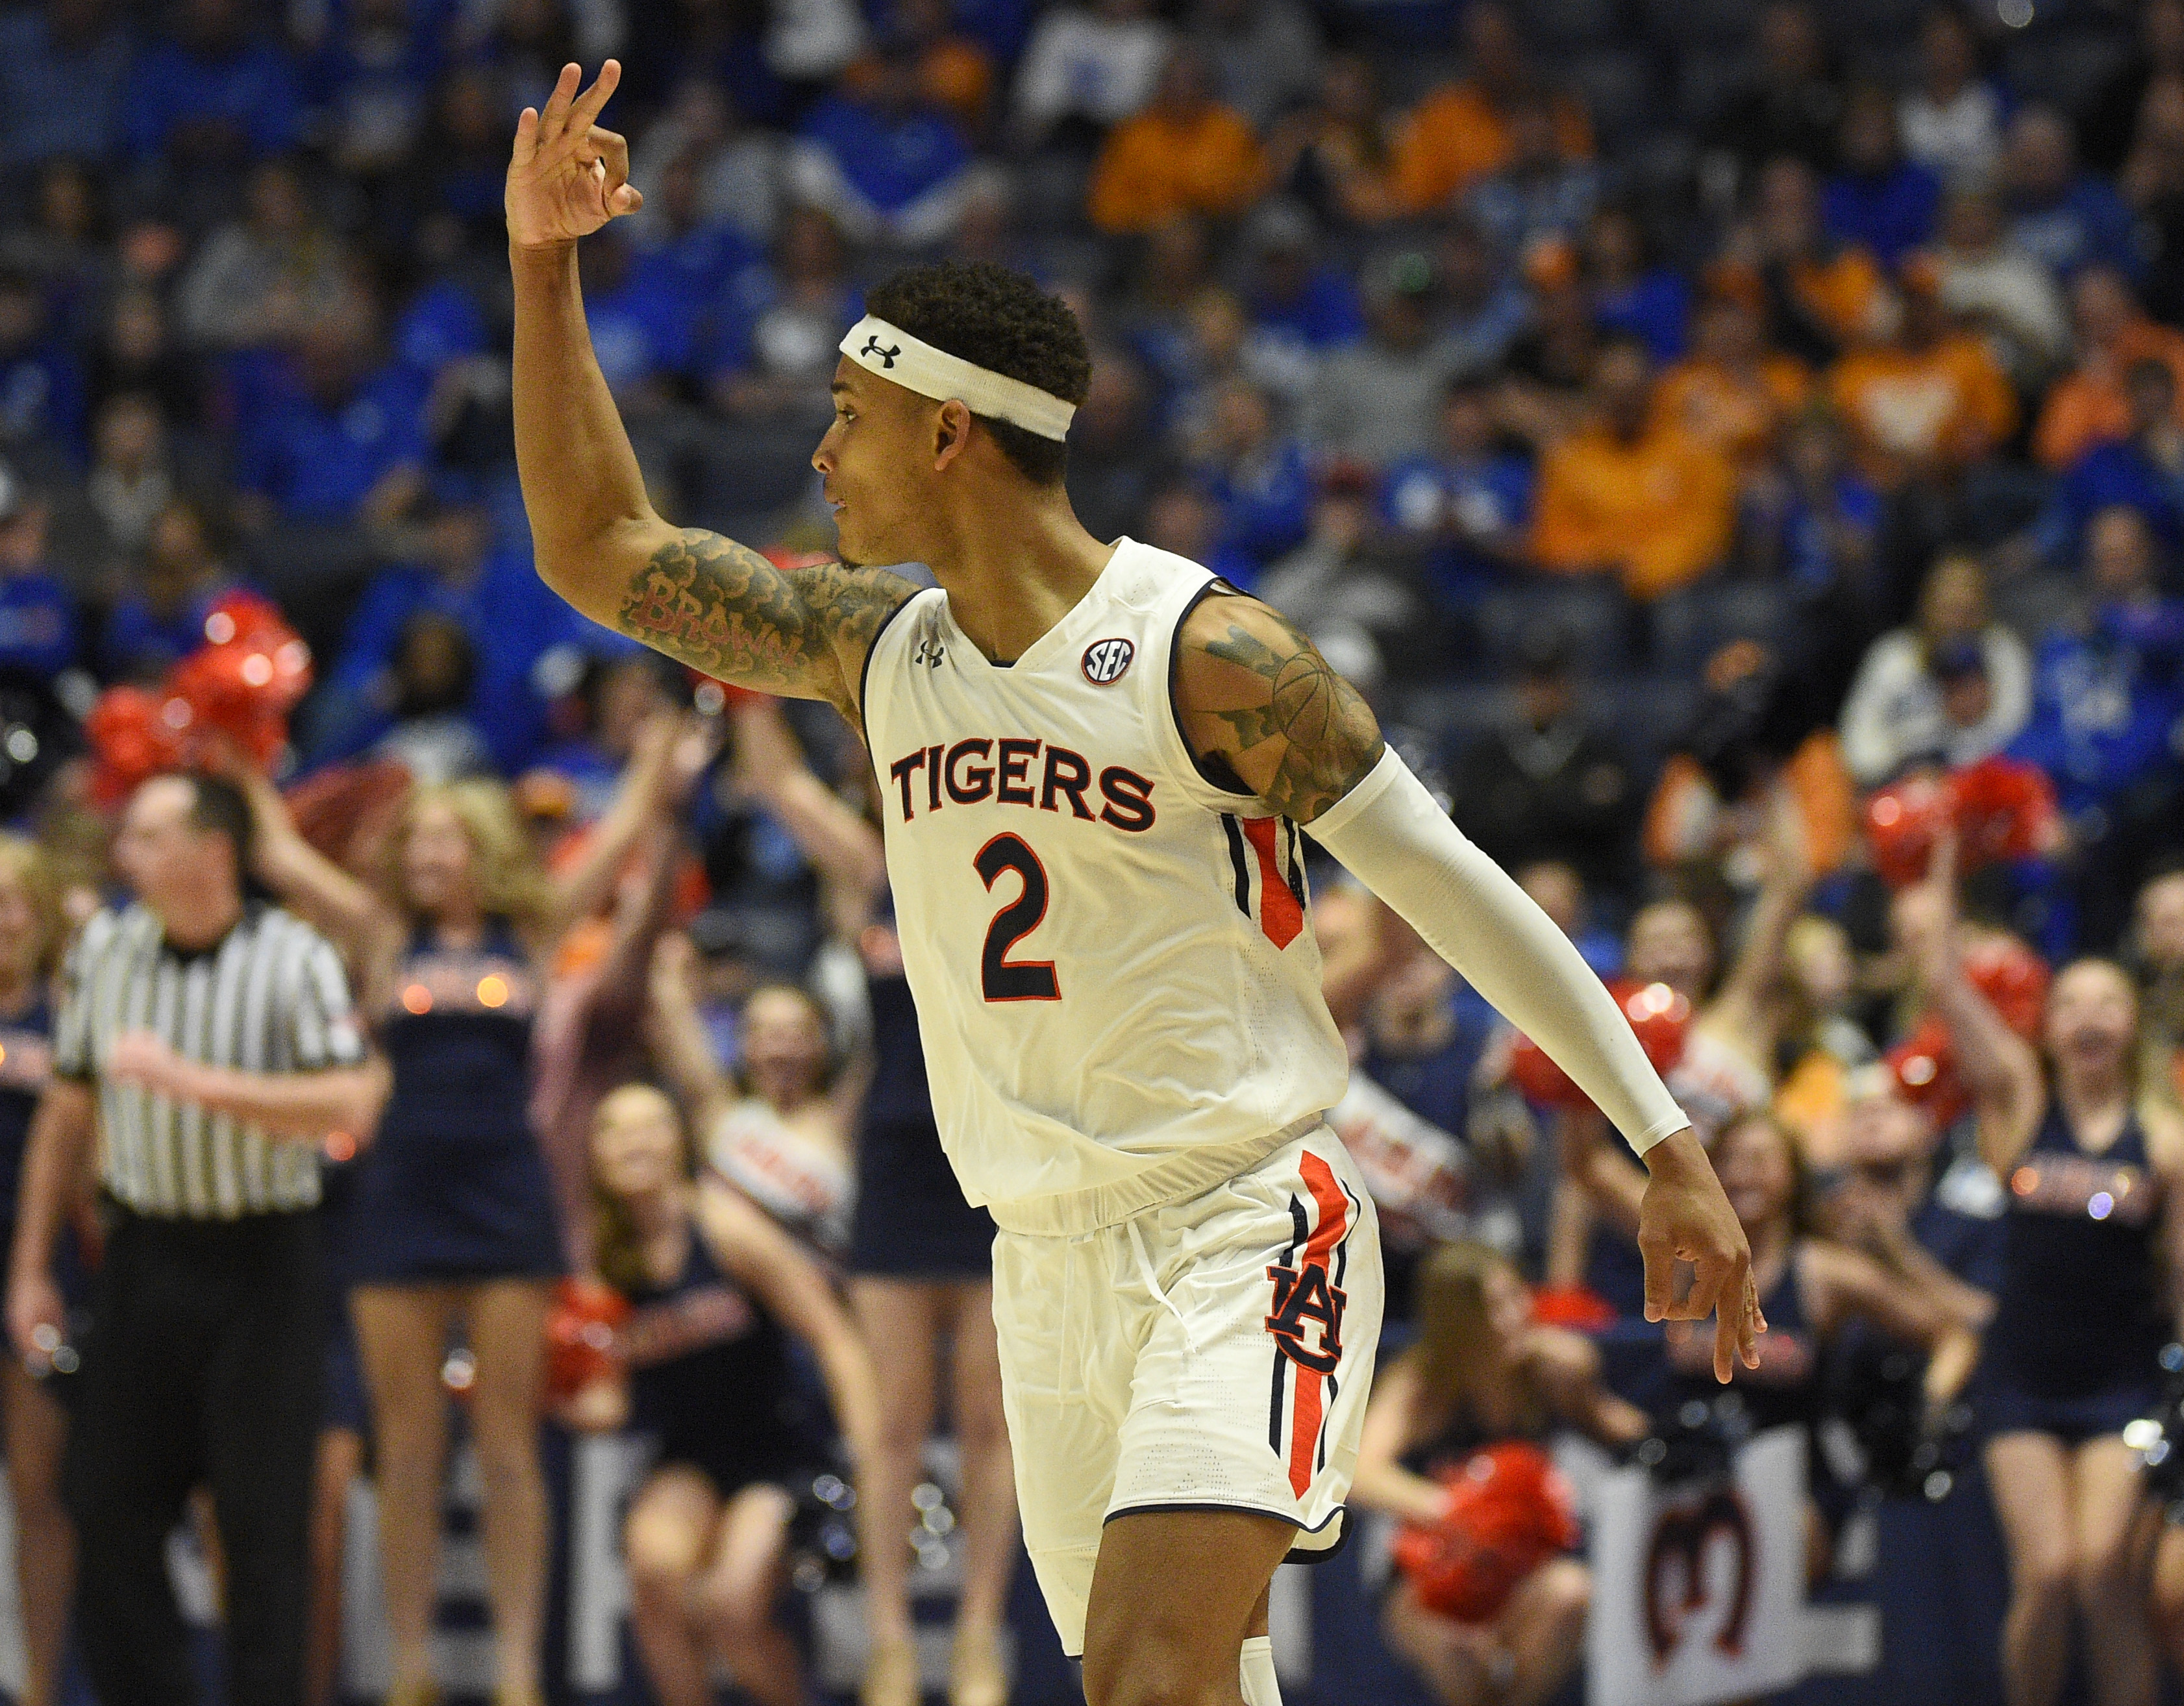 March 16, 2019; Auburn Tigers guard Bryce Brown (2) celebrates after a made three against the Florida Gators during a SEC championship series game between the Auburn Tigers vs Florida Gators at Bridgestone Arena in Nashville, TN (Mandatory Photo Credit: Steve Roberts/Cal Sport Media)(Credit Image: © Steve Roberts/Cal Sport Media/CSM via ZUMA Wire)